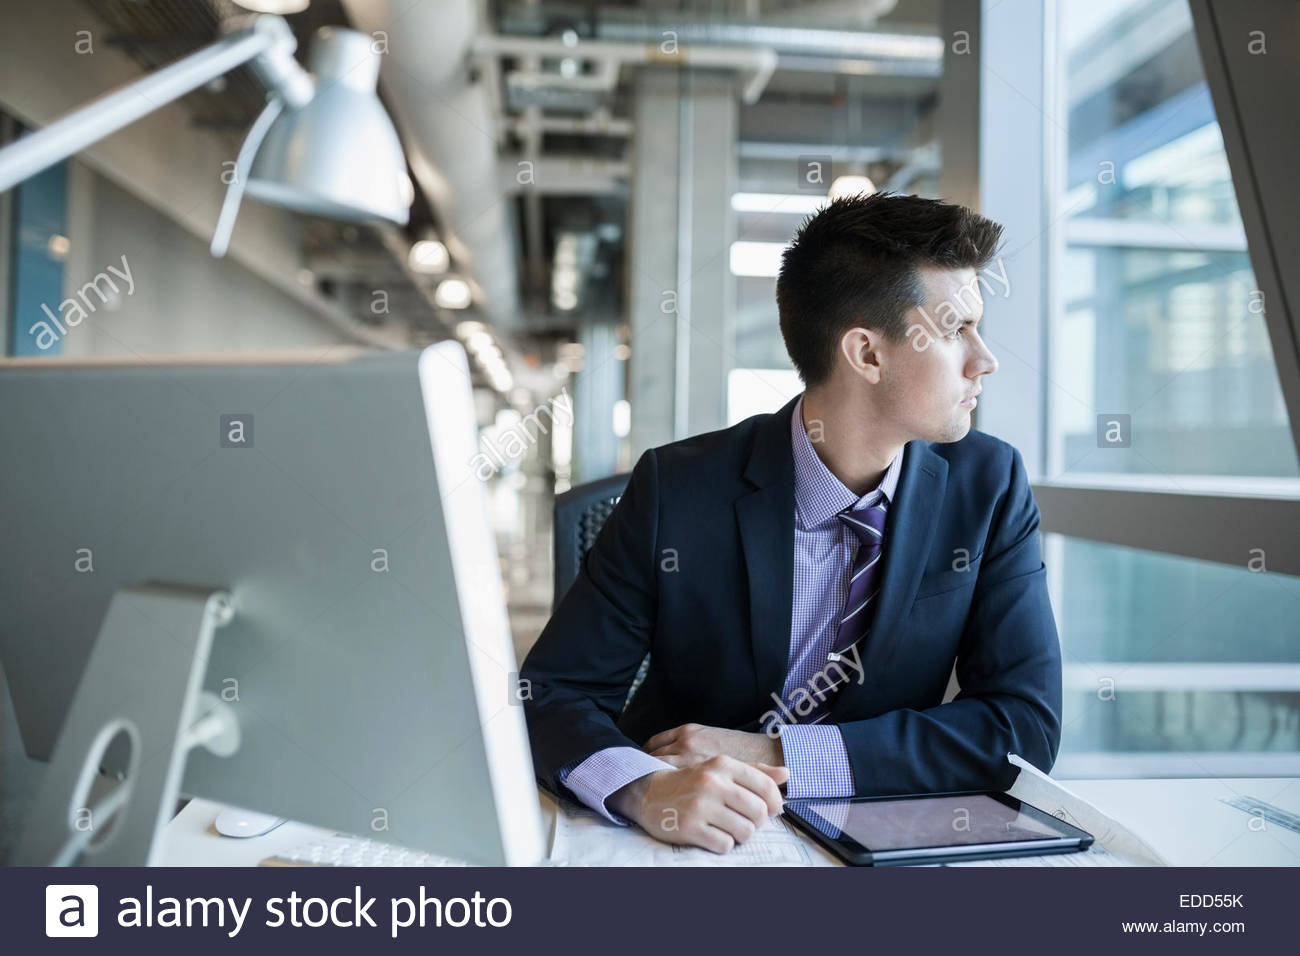 Pensive businessman looking out window - Stock Image